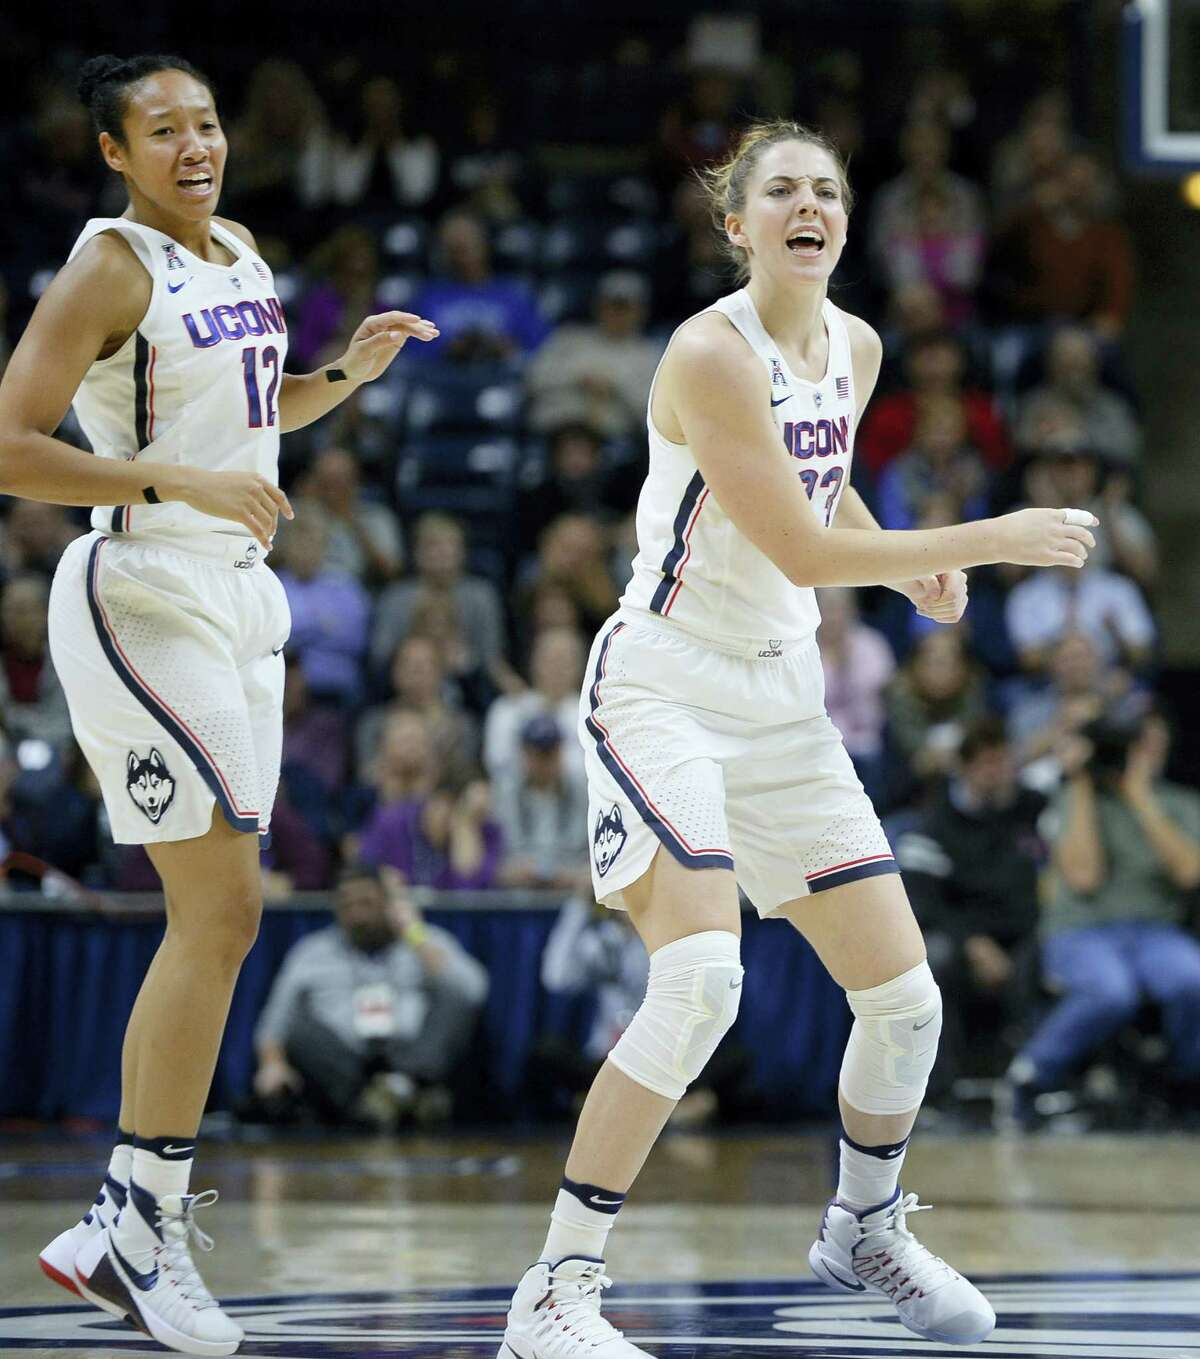 UConn's Saniya Chong, left, and Katie Lou Samuelson react during Thursday's game against DePaul.